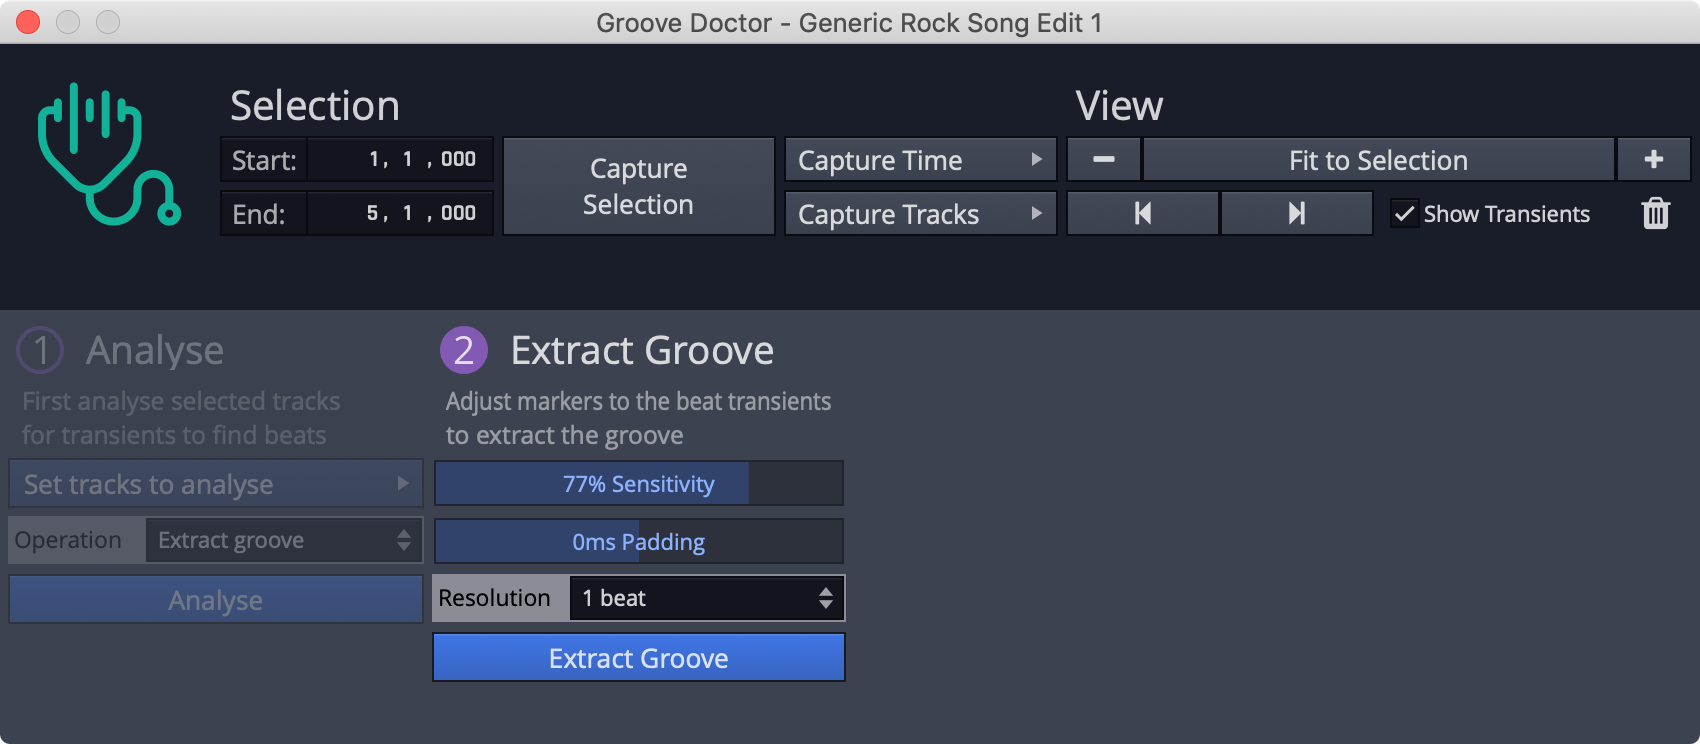 Extract Groove